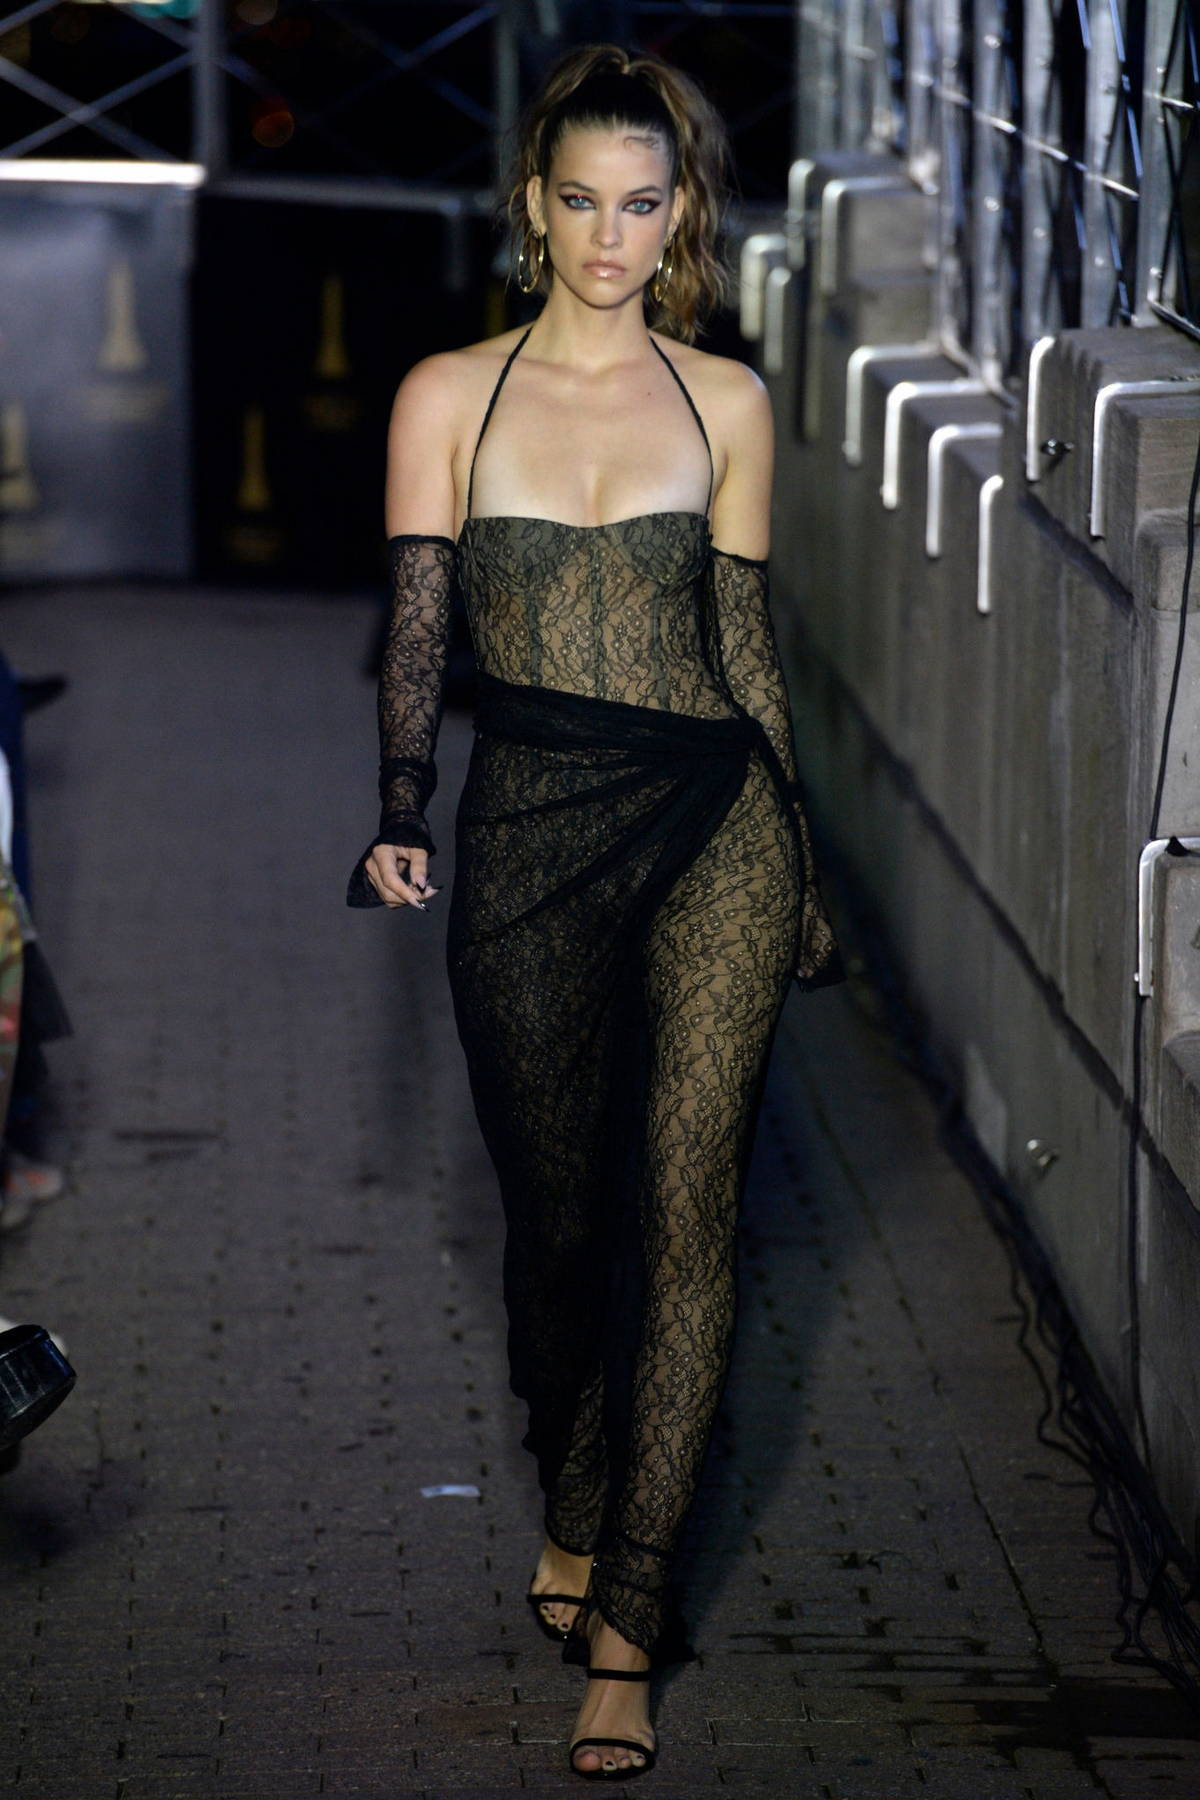 Barbara Palvin walks the runway for Laquan Smith during New York Fashion Week in New York City